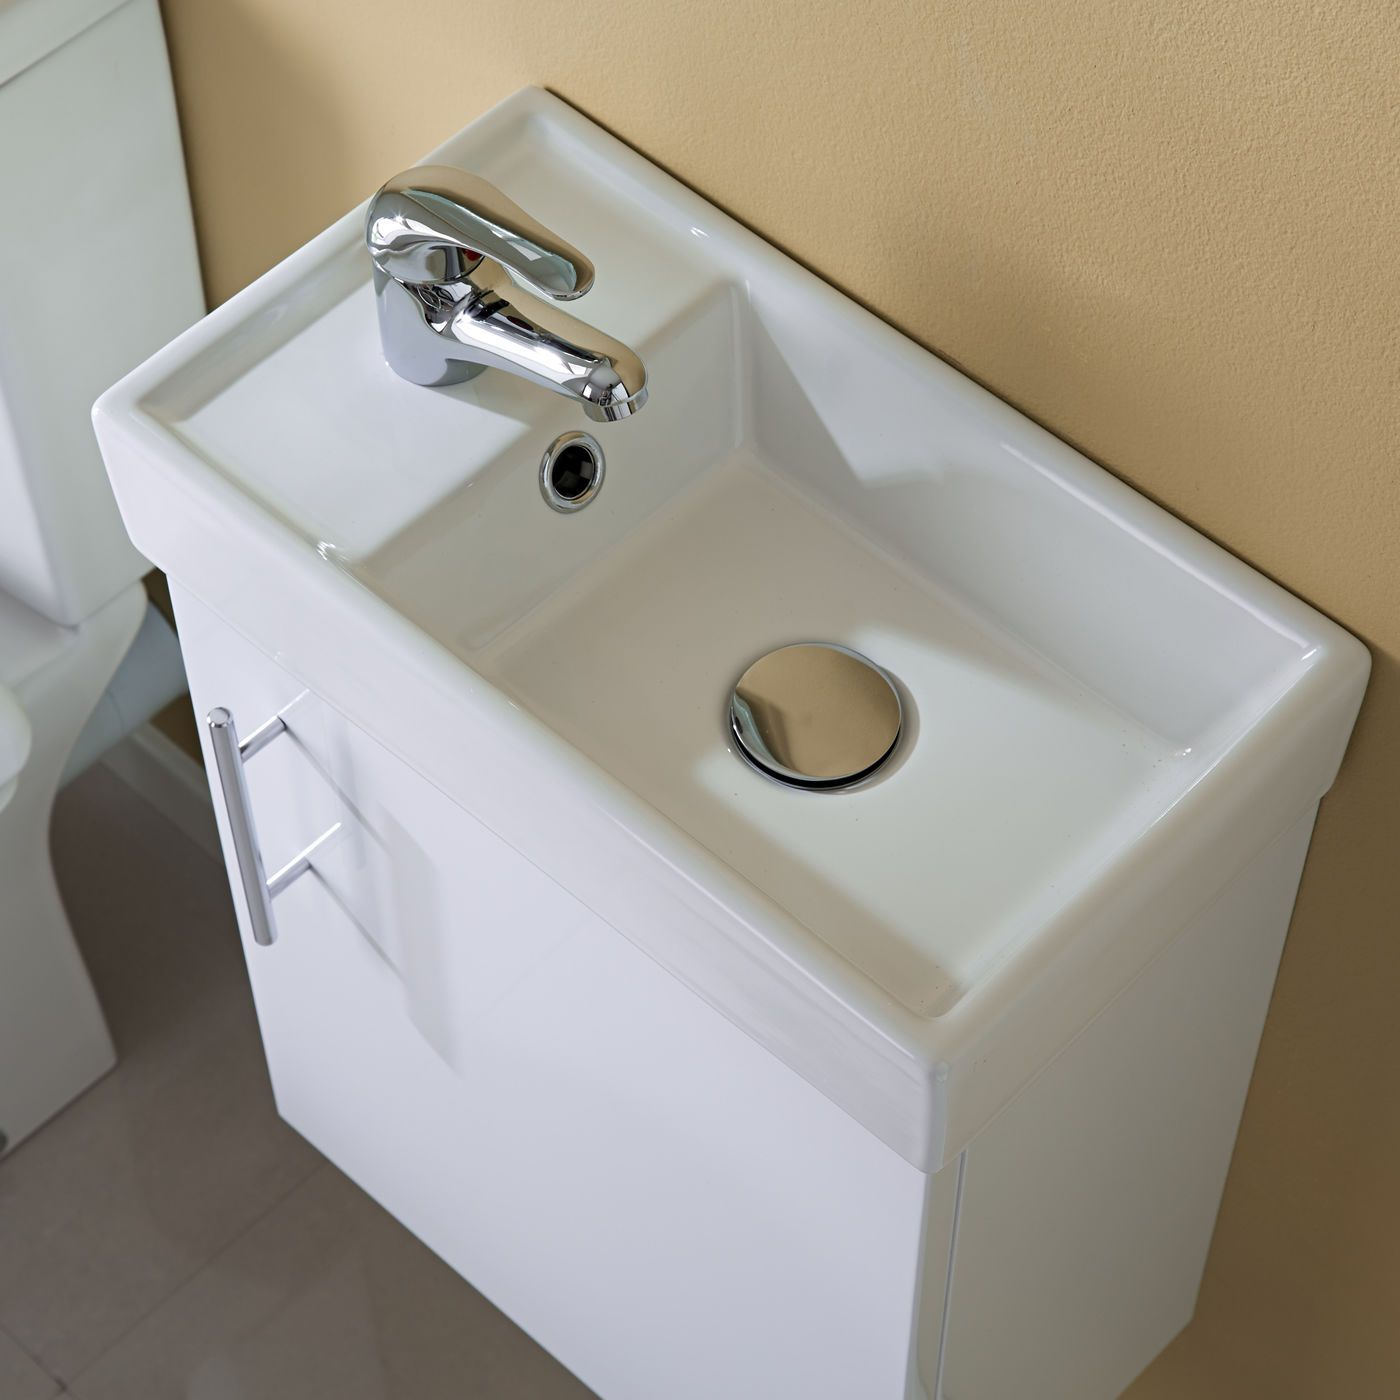 400mm Modern White Compact Wall Hung Vanity Unit Bathroom Cloakroom Basin  Sink. 400mm Modern White Compact Wall Hung Vanity Unit Bathroom